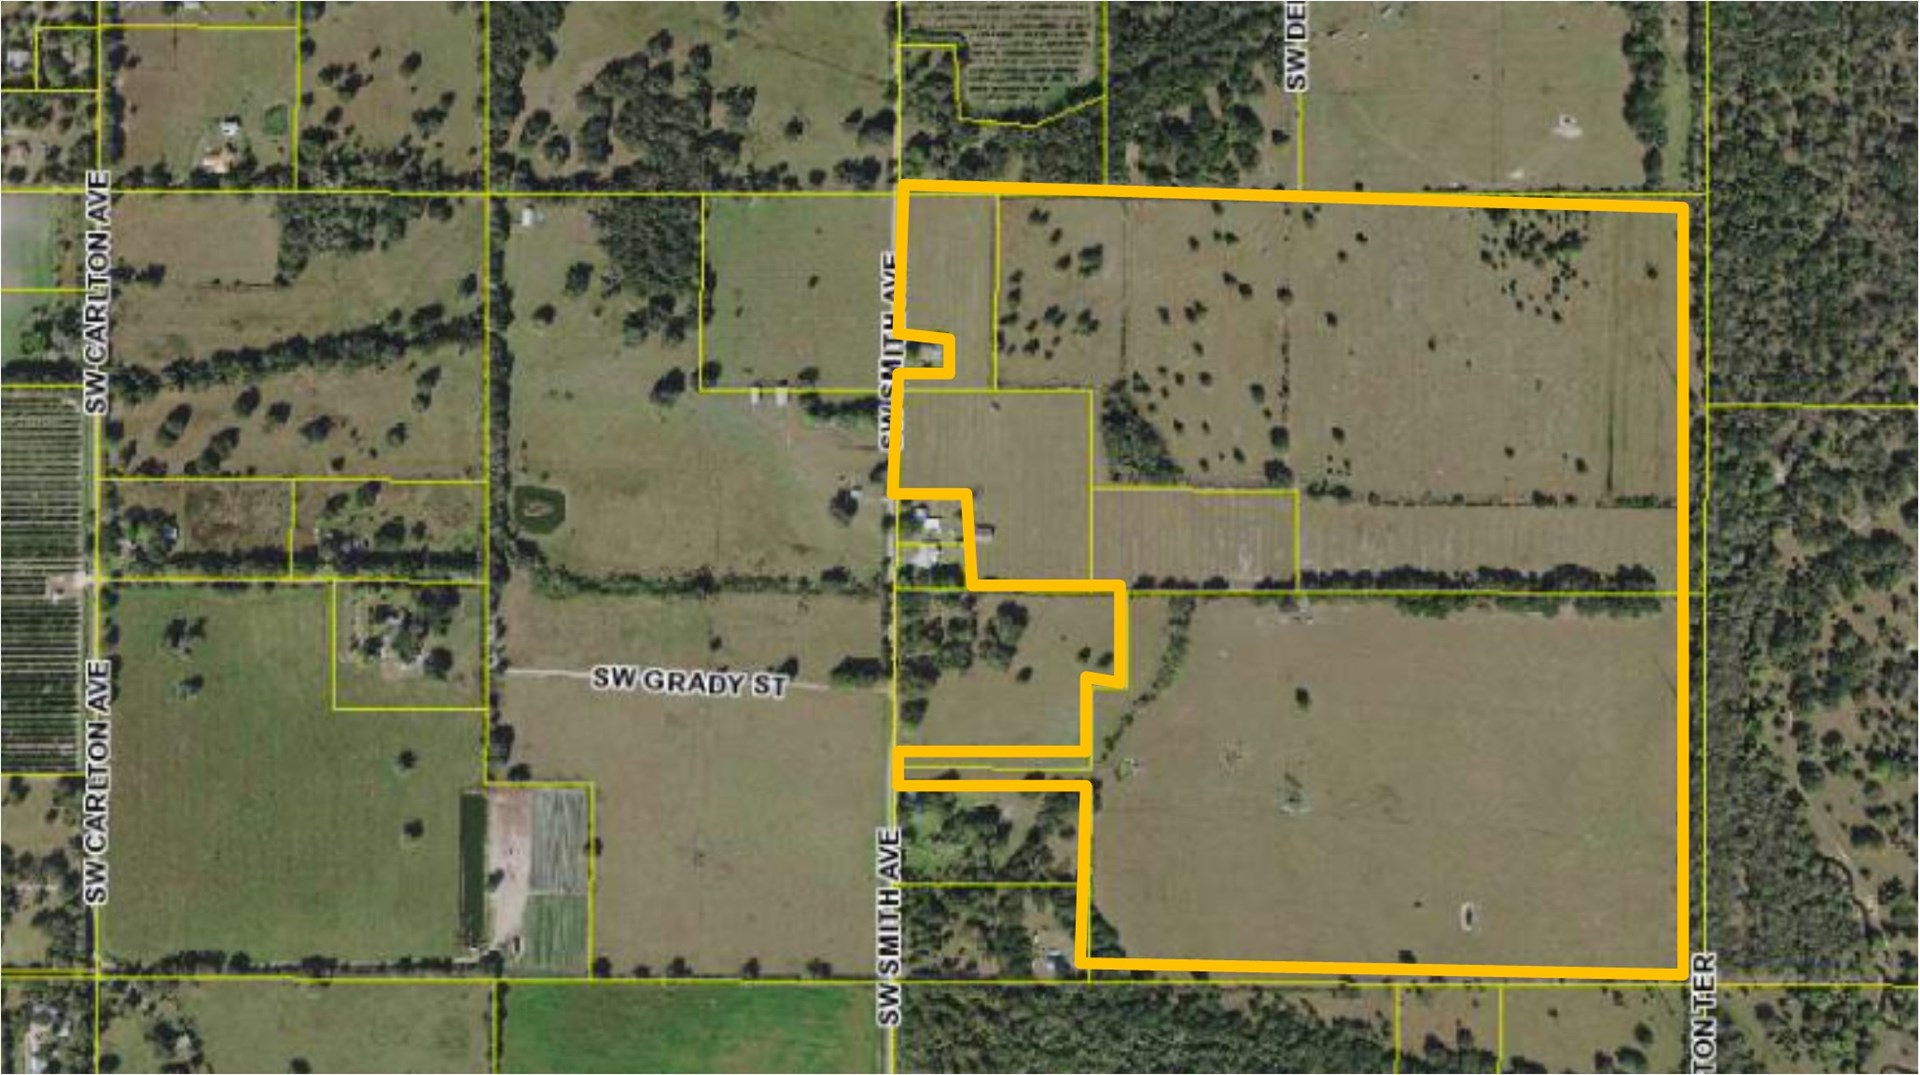 Search for Florida property listings - United Country Rural